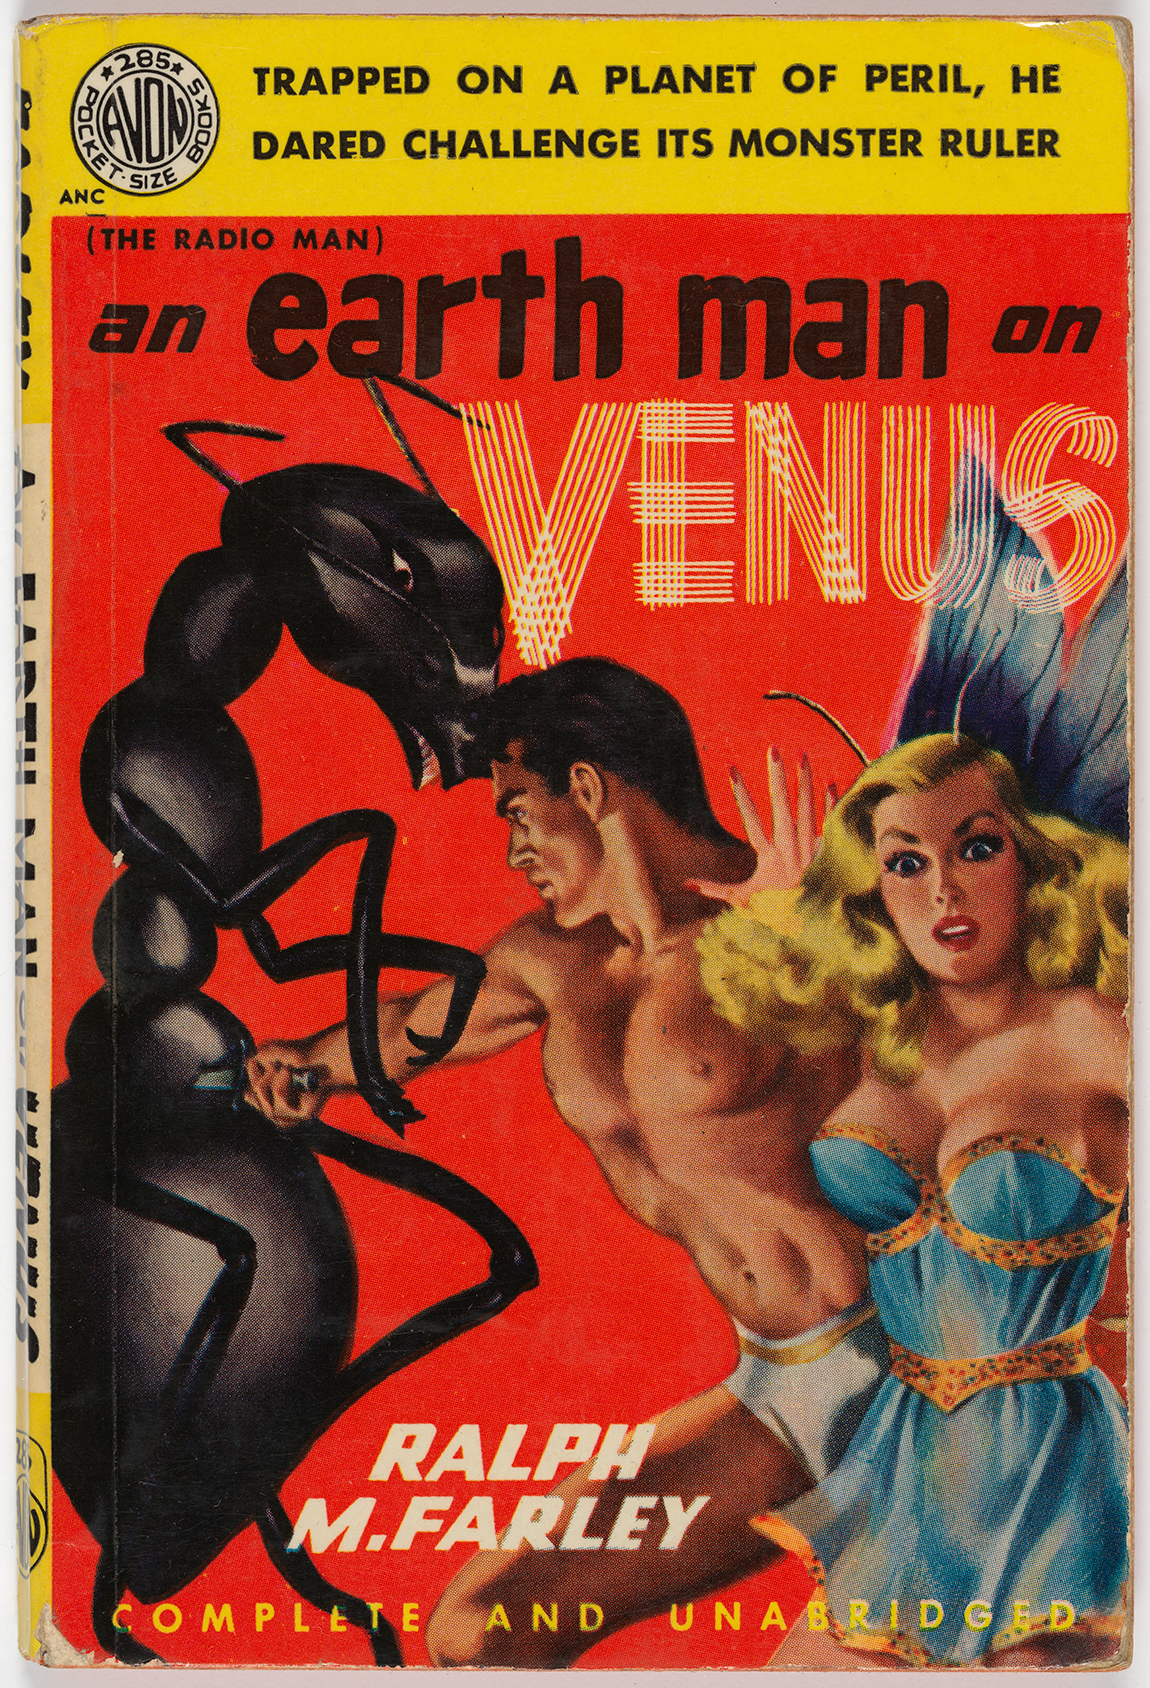 On this front cover, a buff man fights with a human-size ant and a startled woman faces outward. It reads,